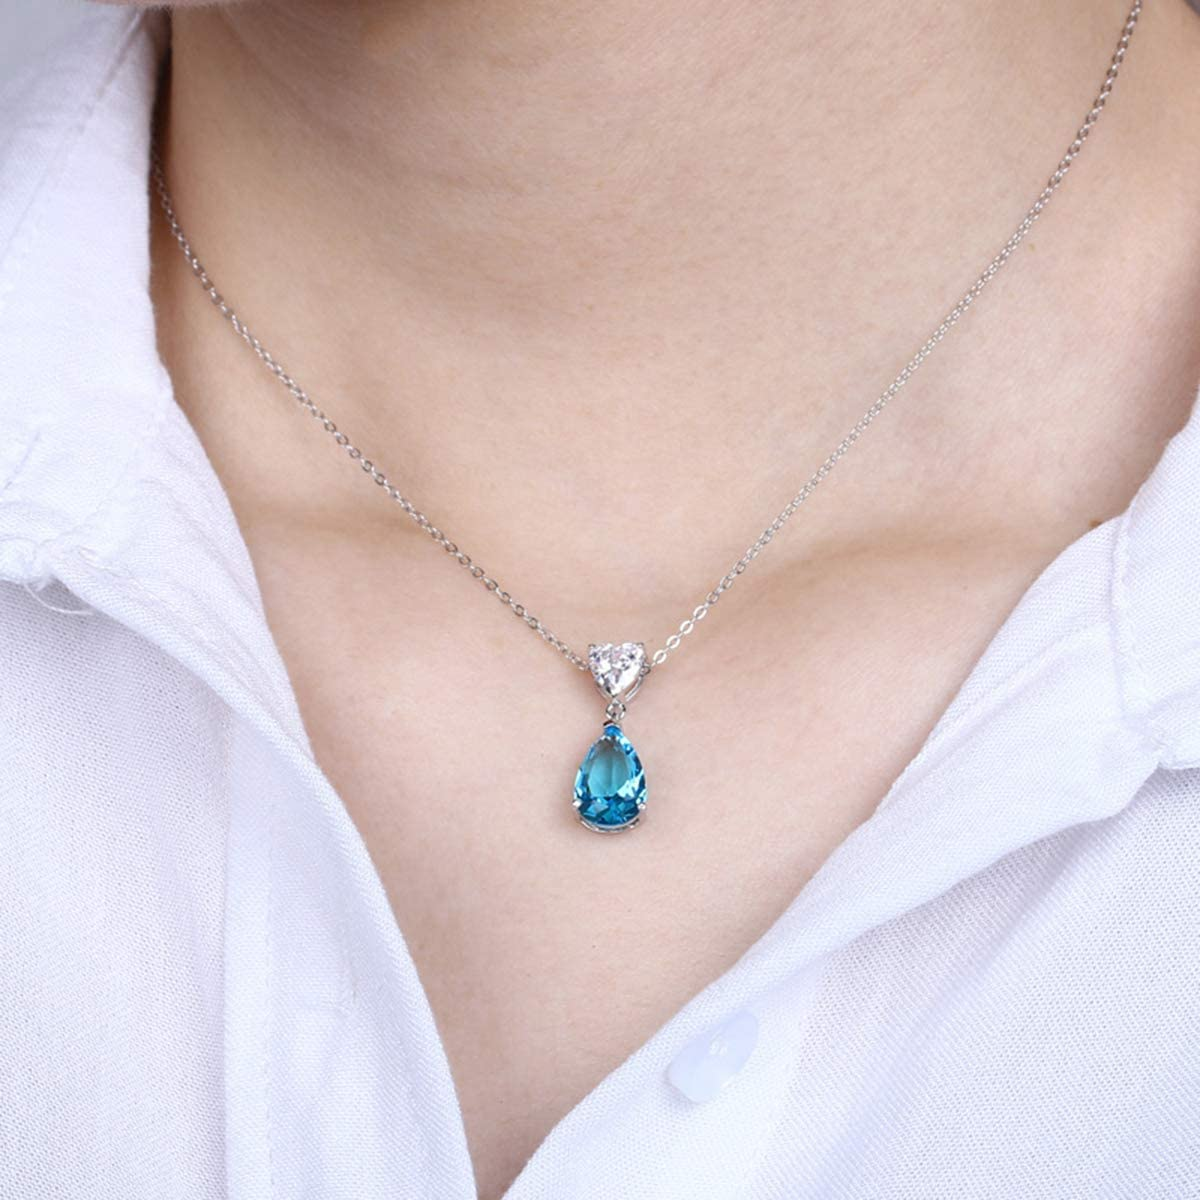 GASTE DE NOYER Blue Topaz Necklace and Stud Earrings 925 Sterling Silver